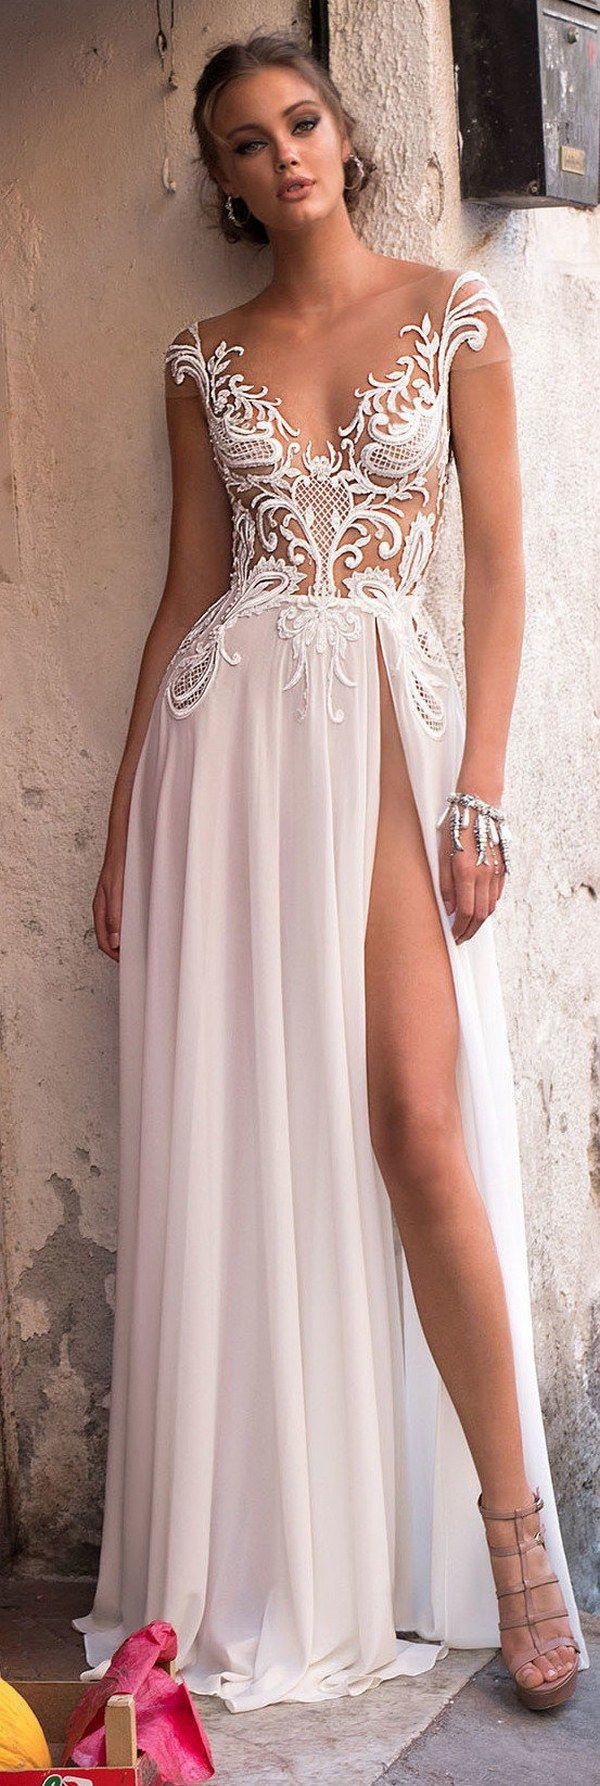 MUSE by Berta Sicily Wedding Dresses 2018 Supernatural Style | https ...